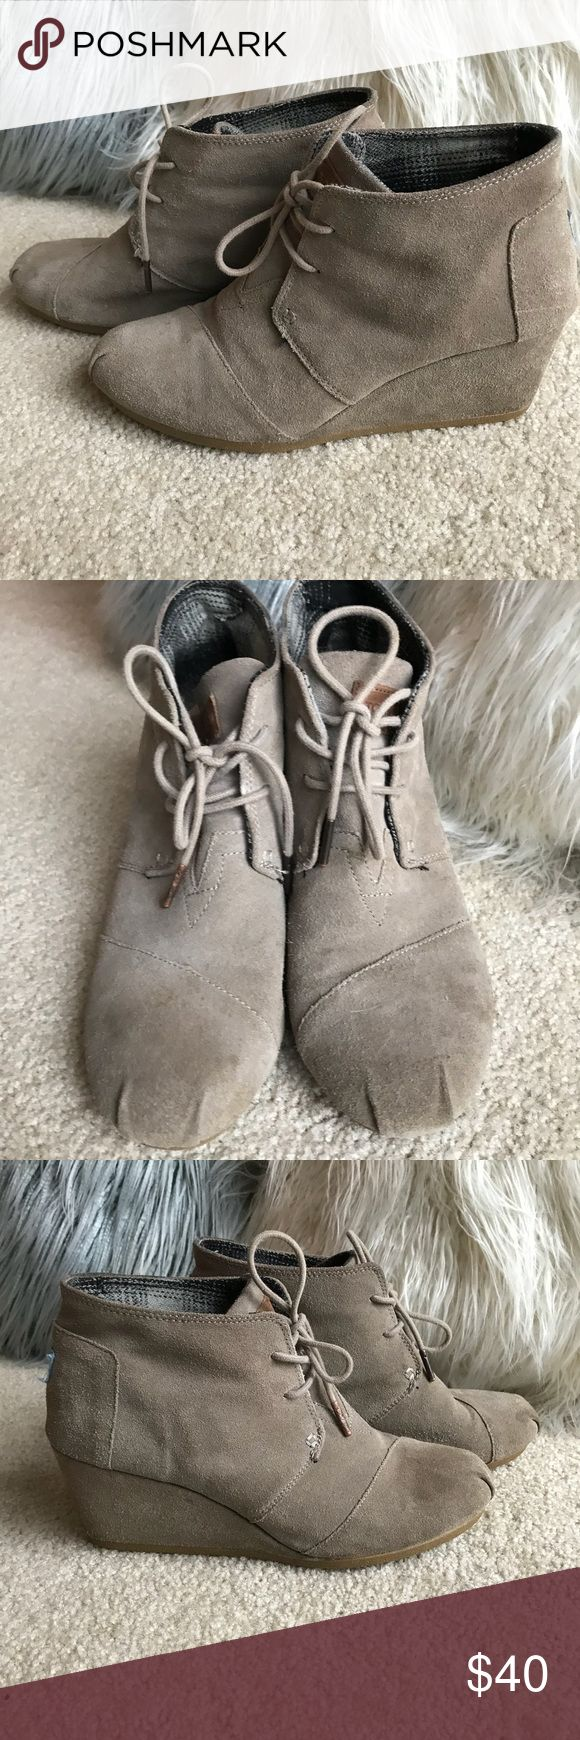 Toms Wedge Booties Classic wedge booties. Great taupe color...goes with everything. Feel free to ask questions. Toms Shoes Ankle Boots & Booties